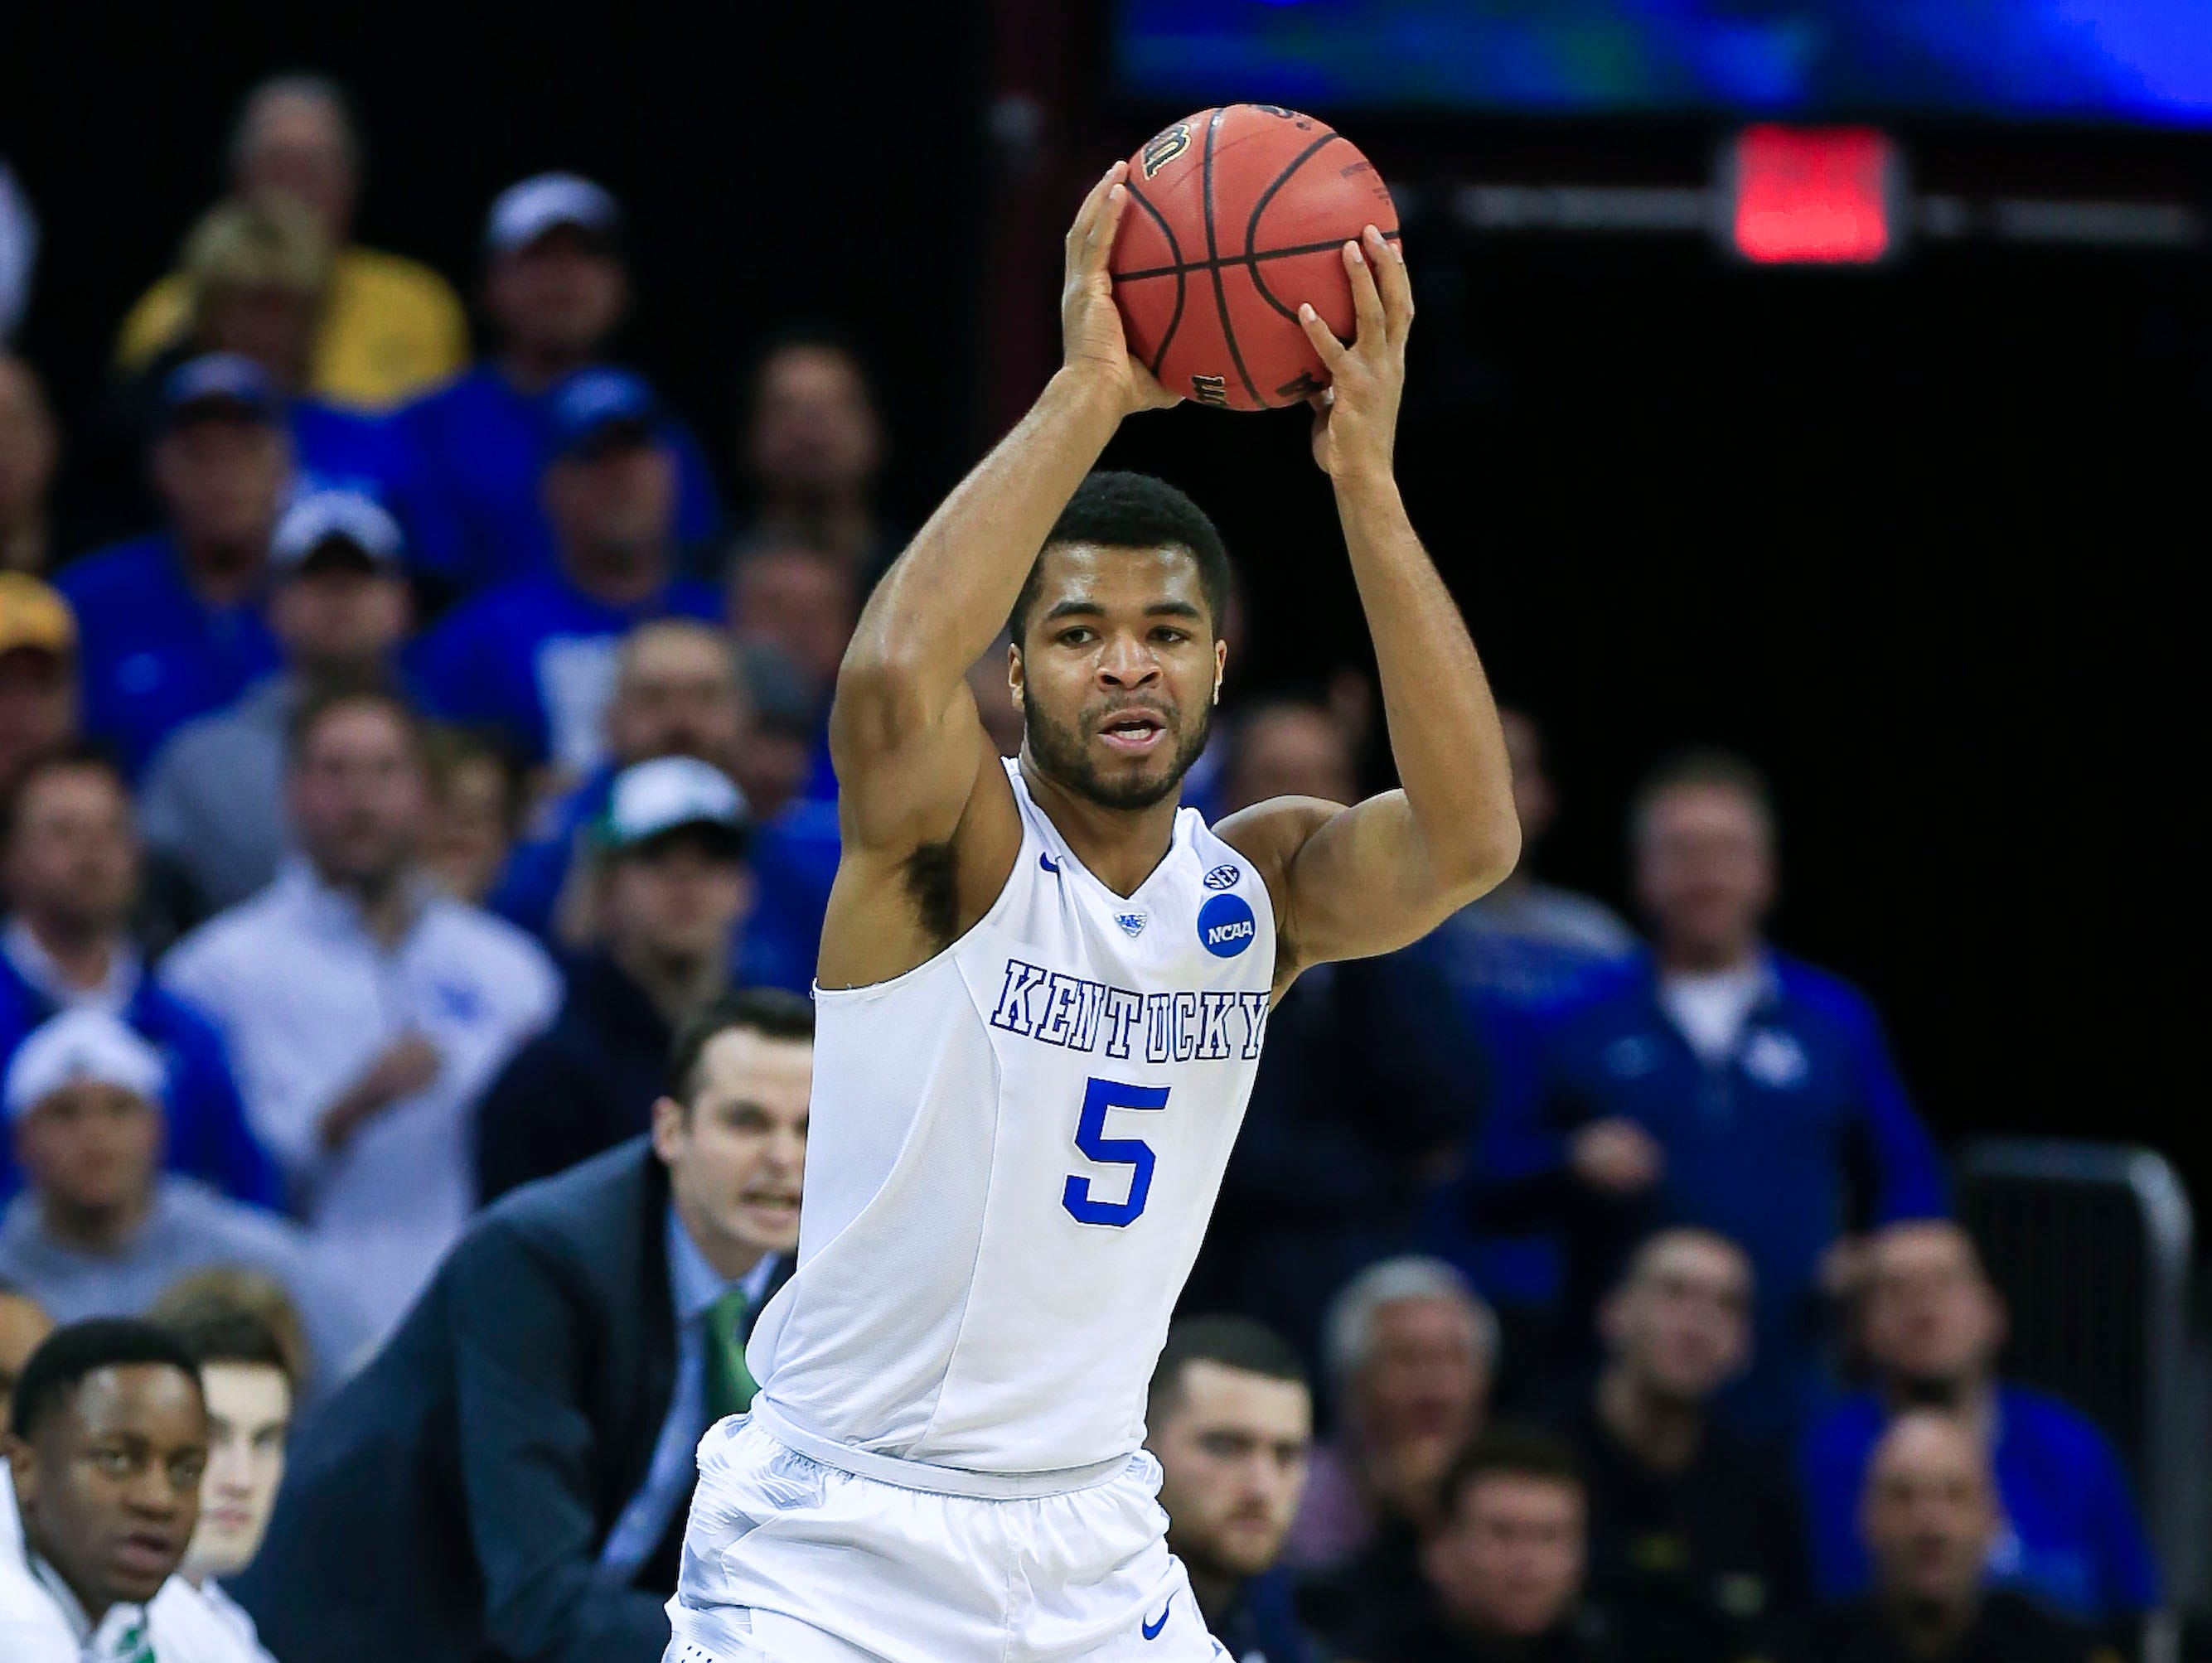 Kentucky's Andrew Harrison looks to pass over Notre Dame's Demetrius Jackson during Elite Eight game at Cleveland's Quicken Loans Arena. March 28, 2015 By Matt Stone, The C-J